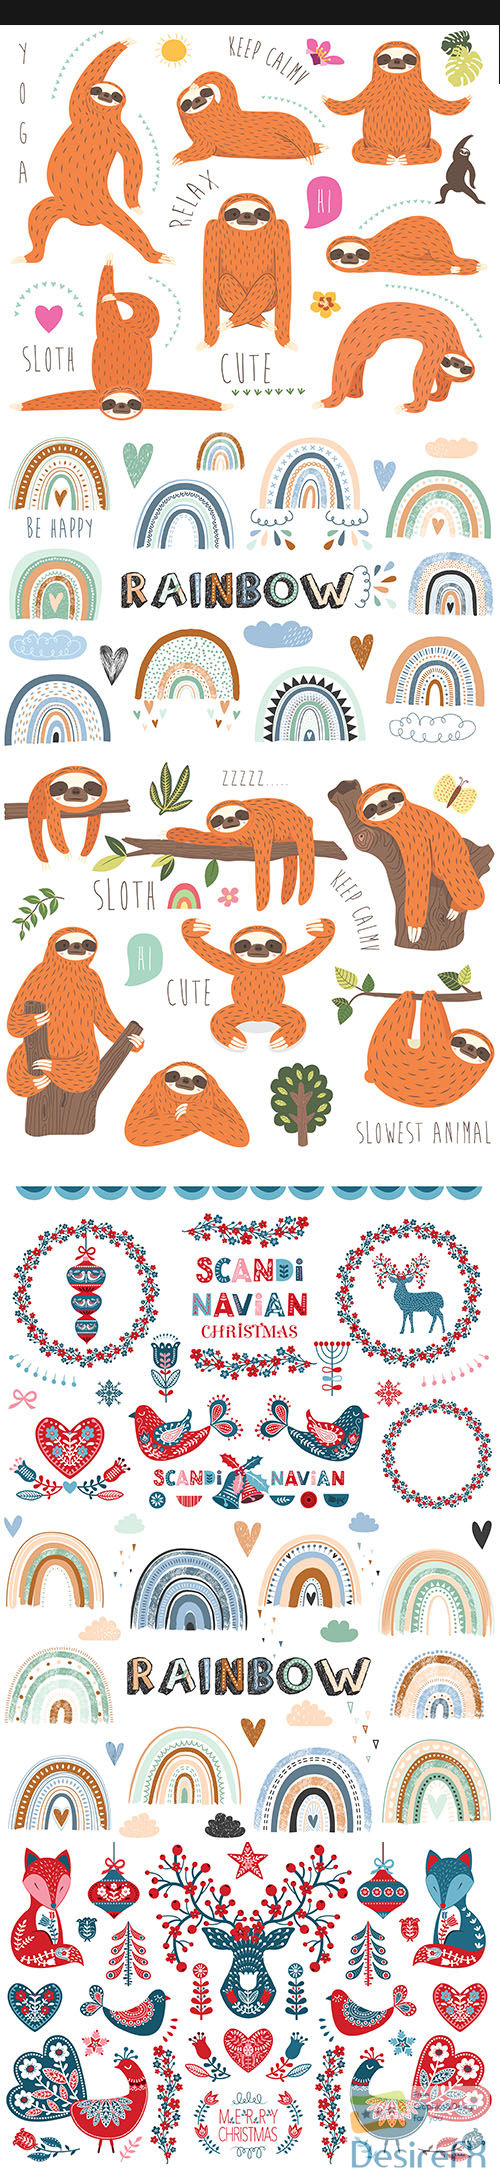 Collection of cute sloth illustration